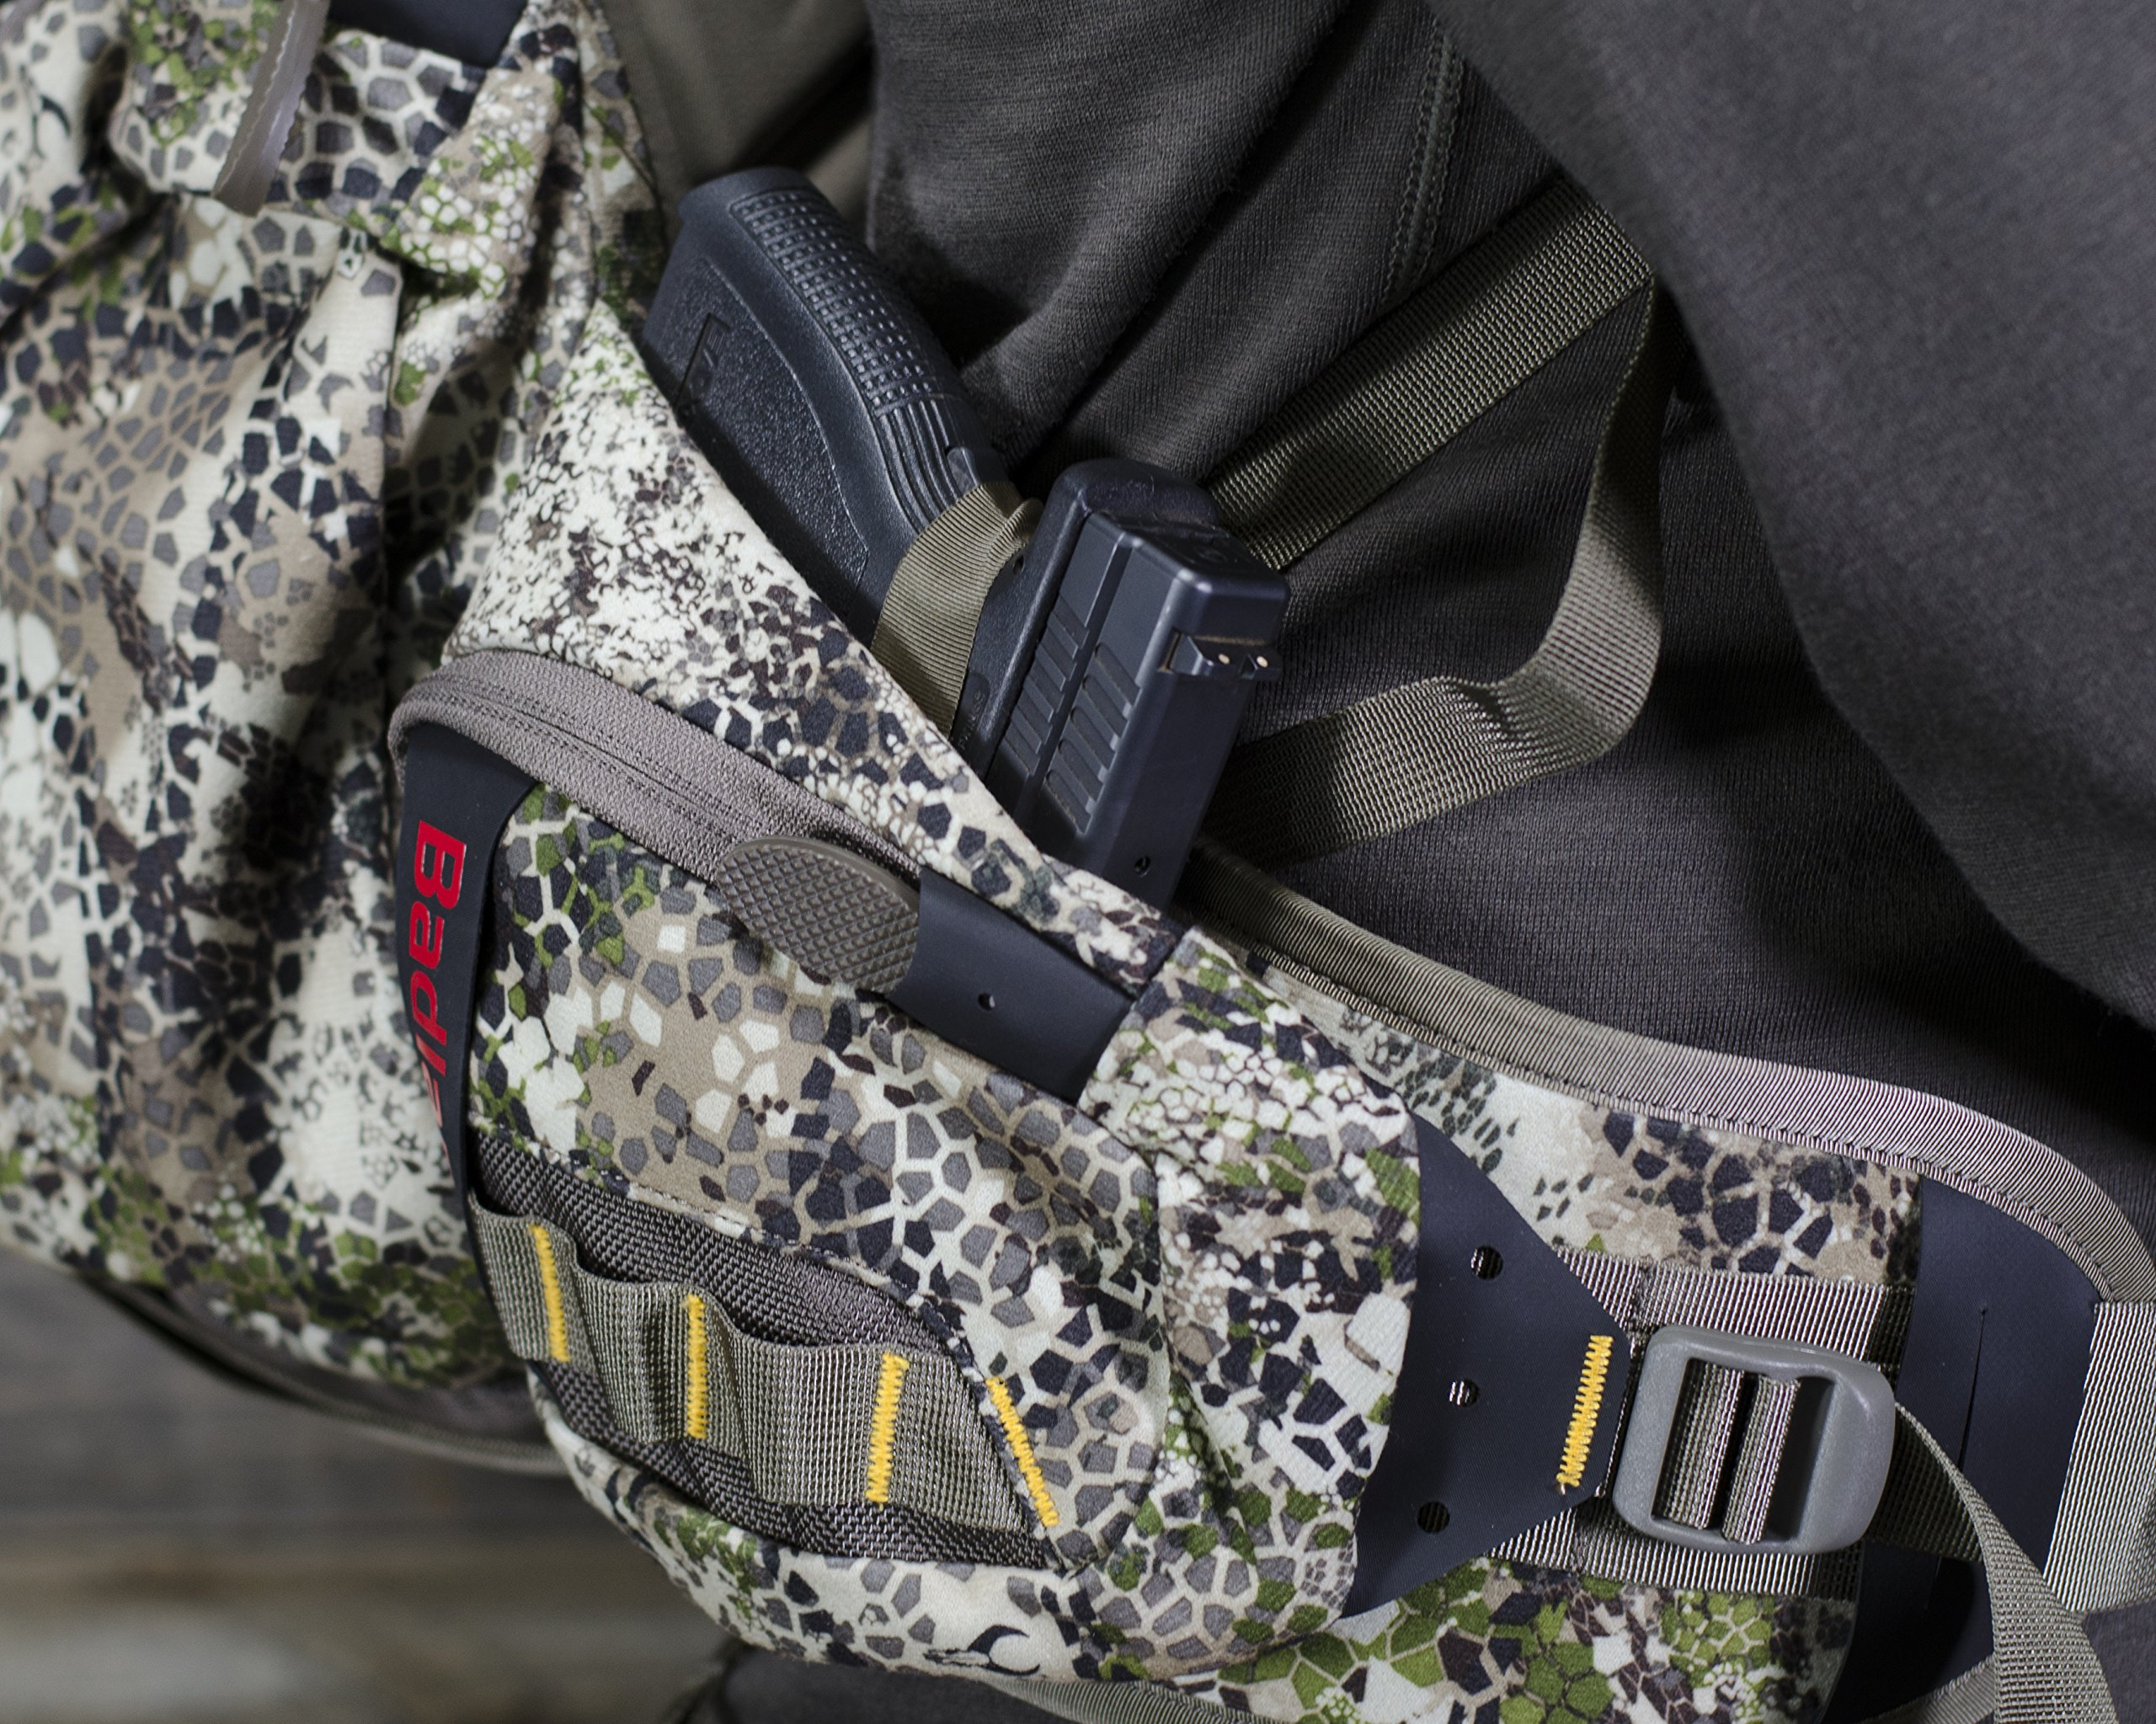 Badlands Superday Camouflage Hunting Backpack - Bow, Rifle, and Pistol Compatible, Approach Camo by Badlands (Image #6)